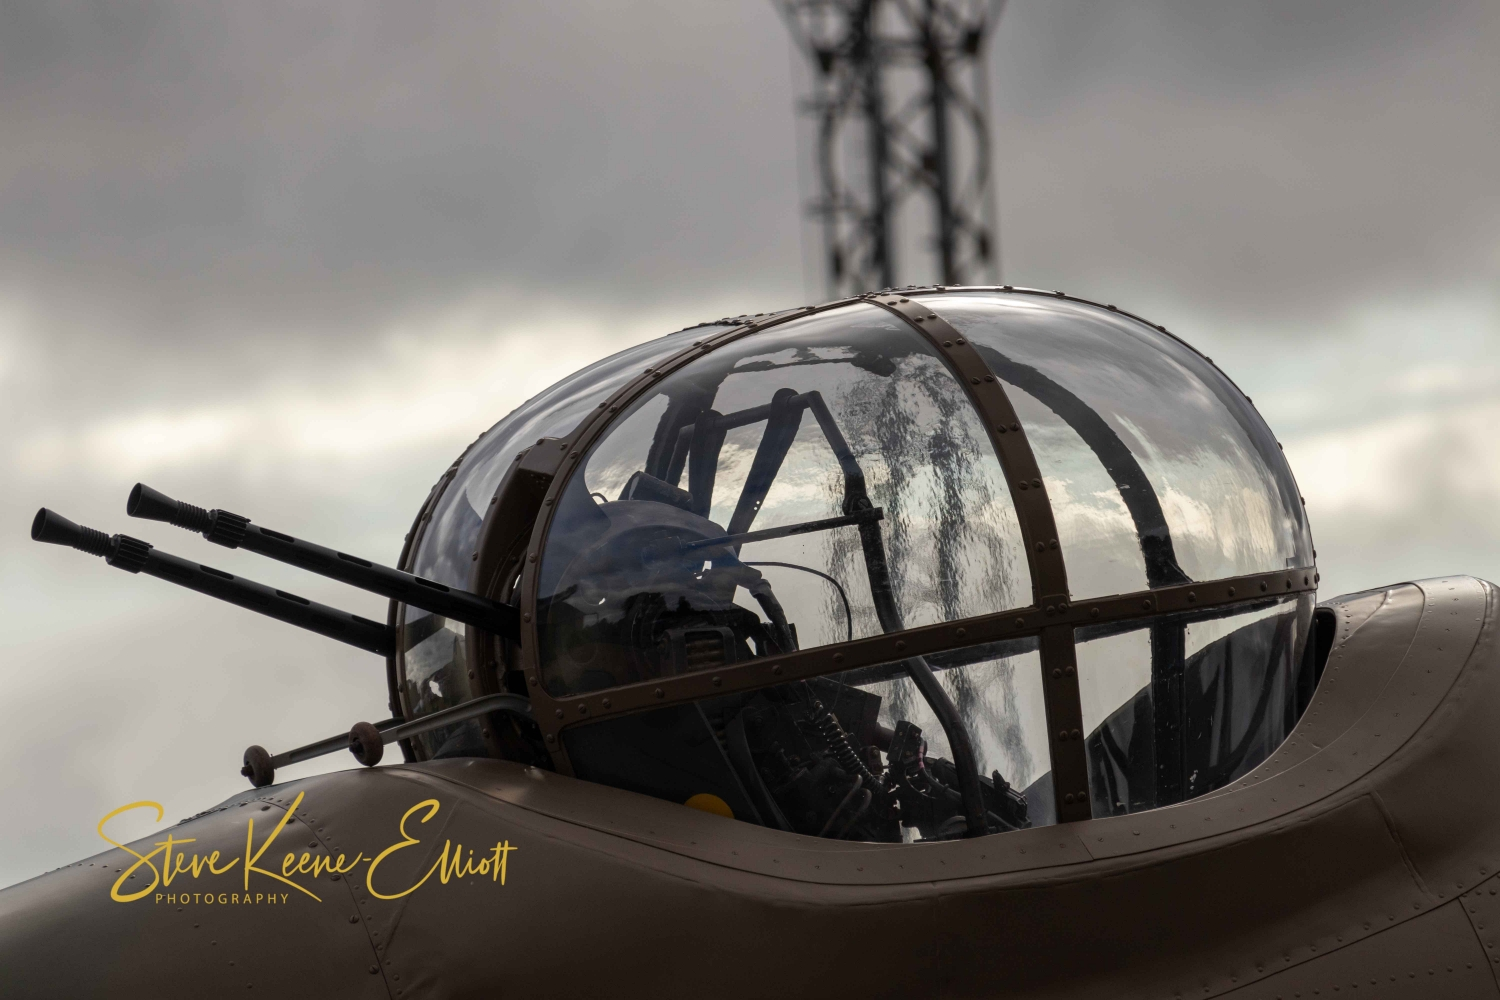 BBMF Club/LLA Members' Day 2019 - A Little Bit Wet!